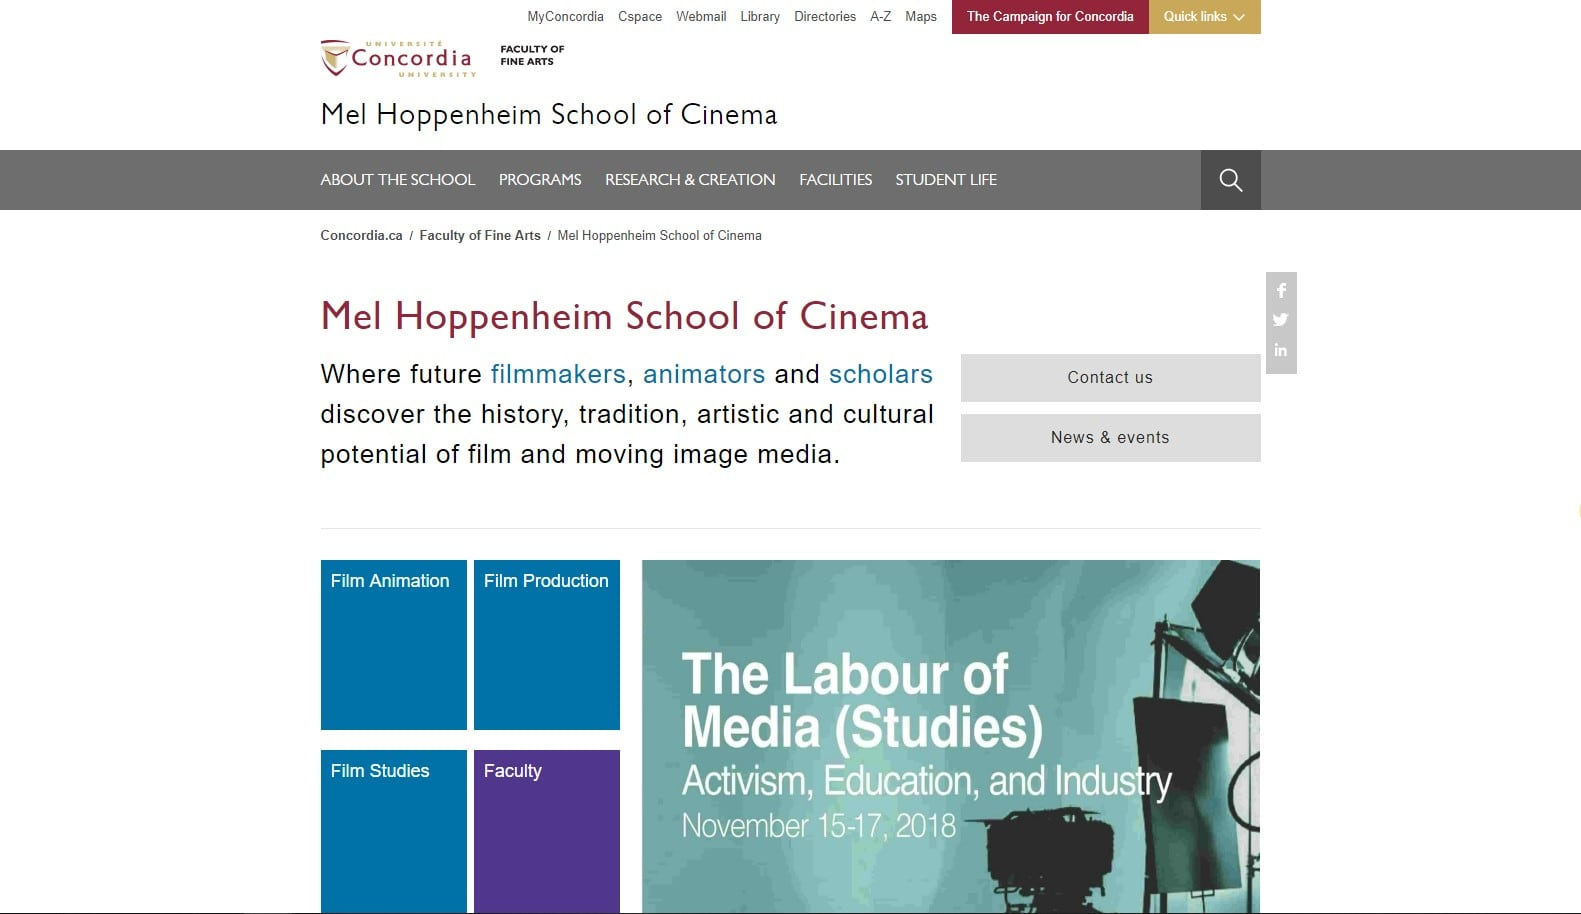 Concordia University - Mel Hoppenheim School of Cinema